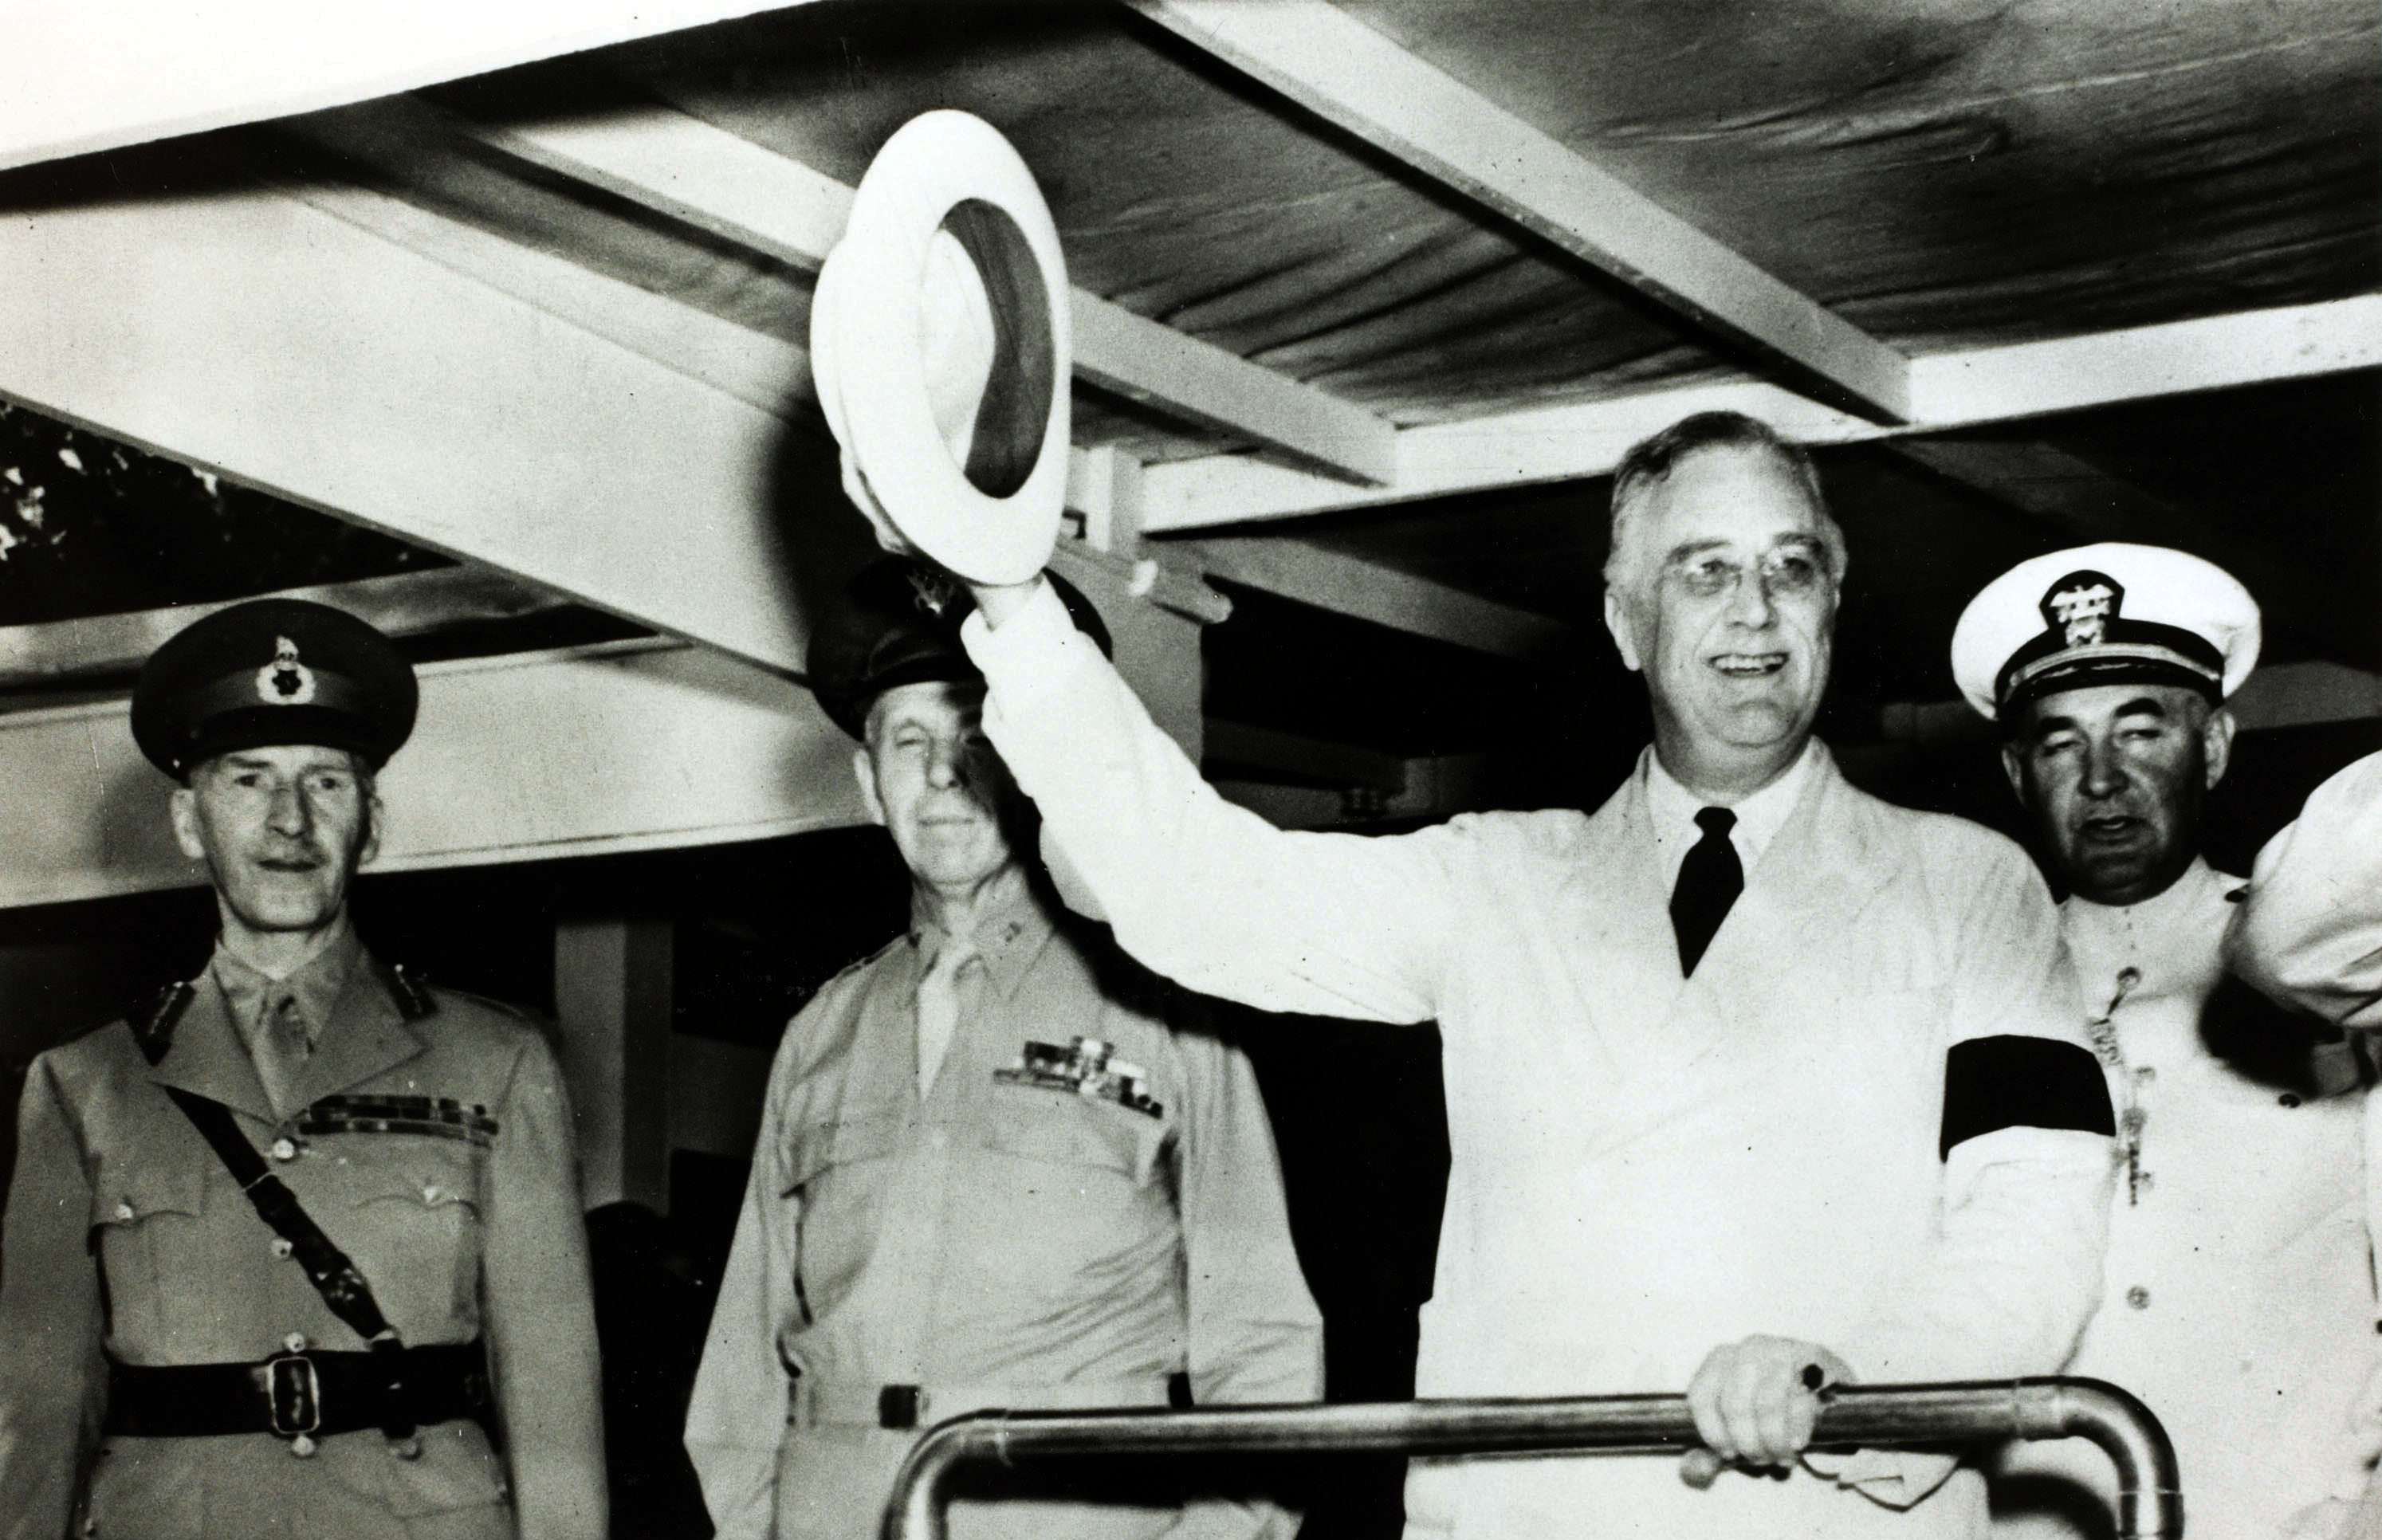 Grand illusion: Leg braces and a vise-like grip helped FDR look more able-bodied than he was